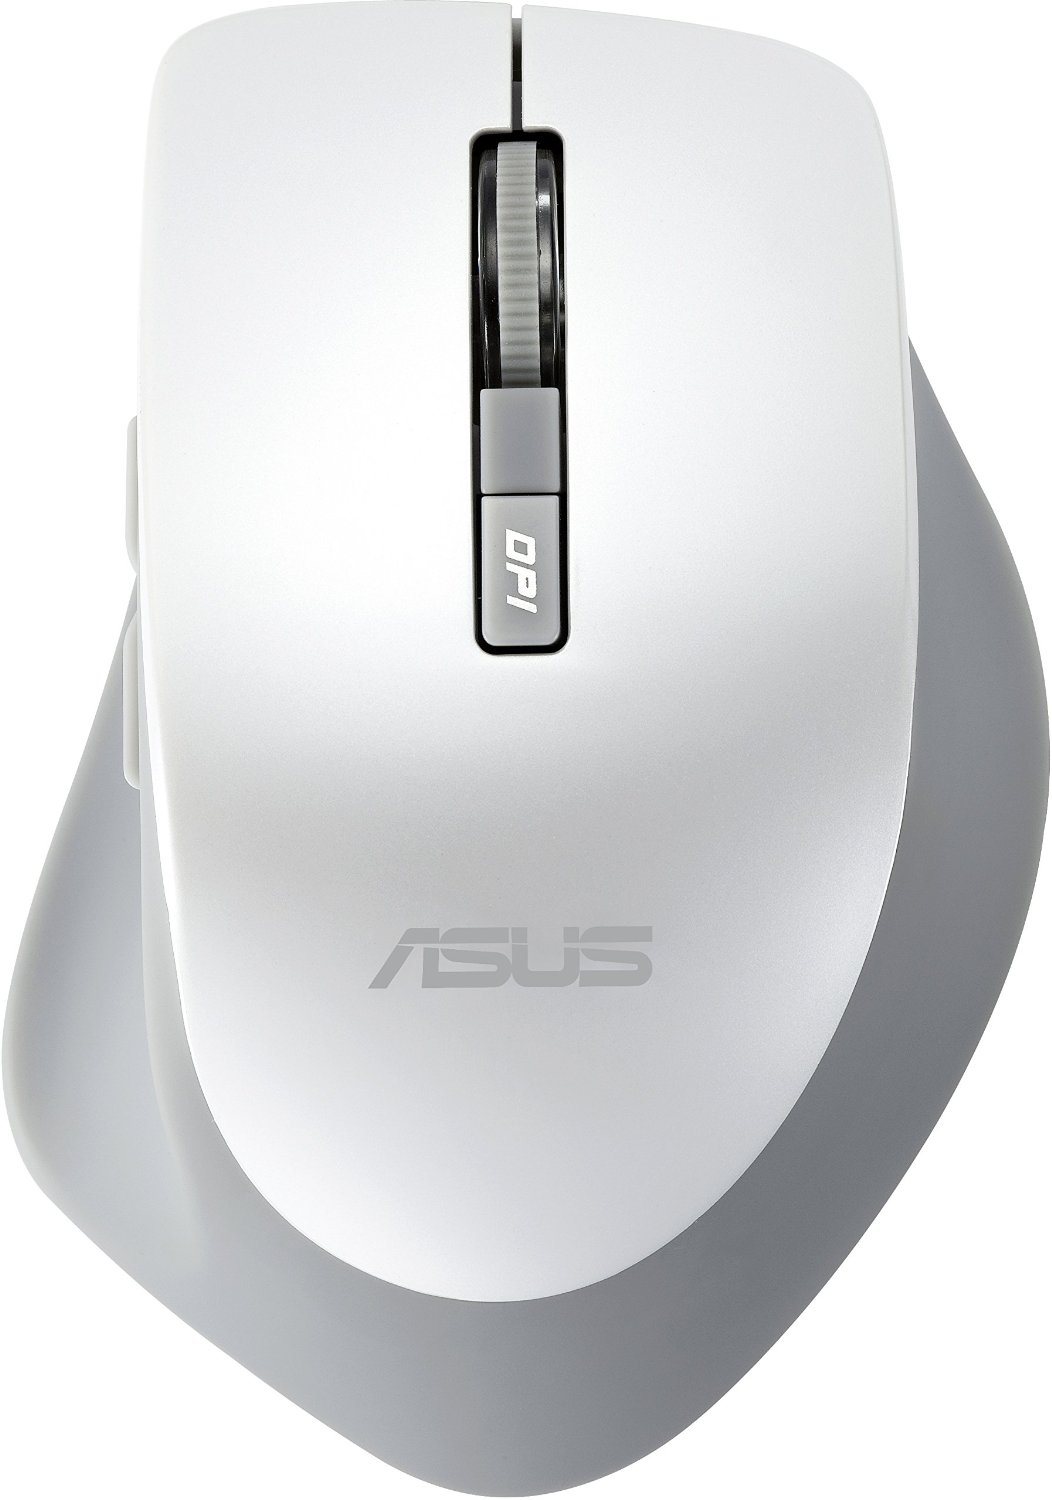 Asus WT425 MOUSE White Wireless, 90XB0280-BMU010